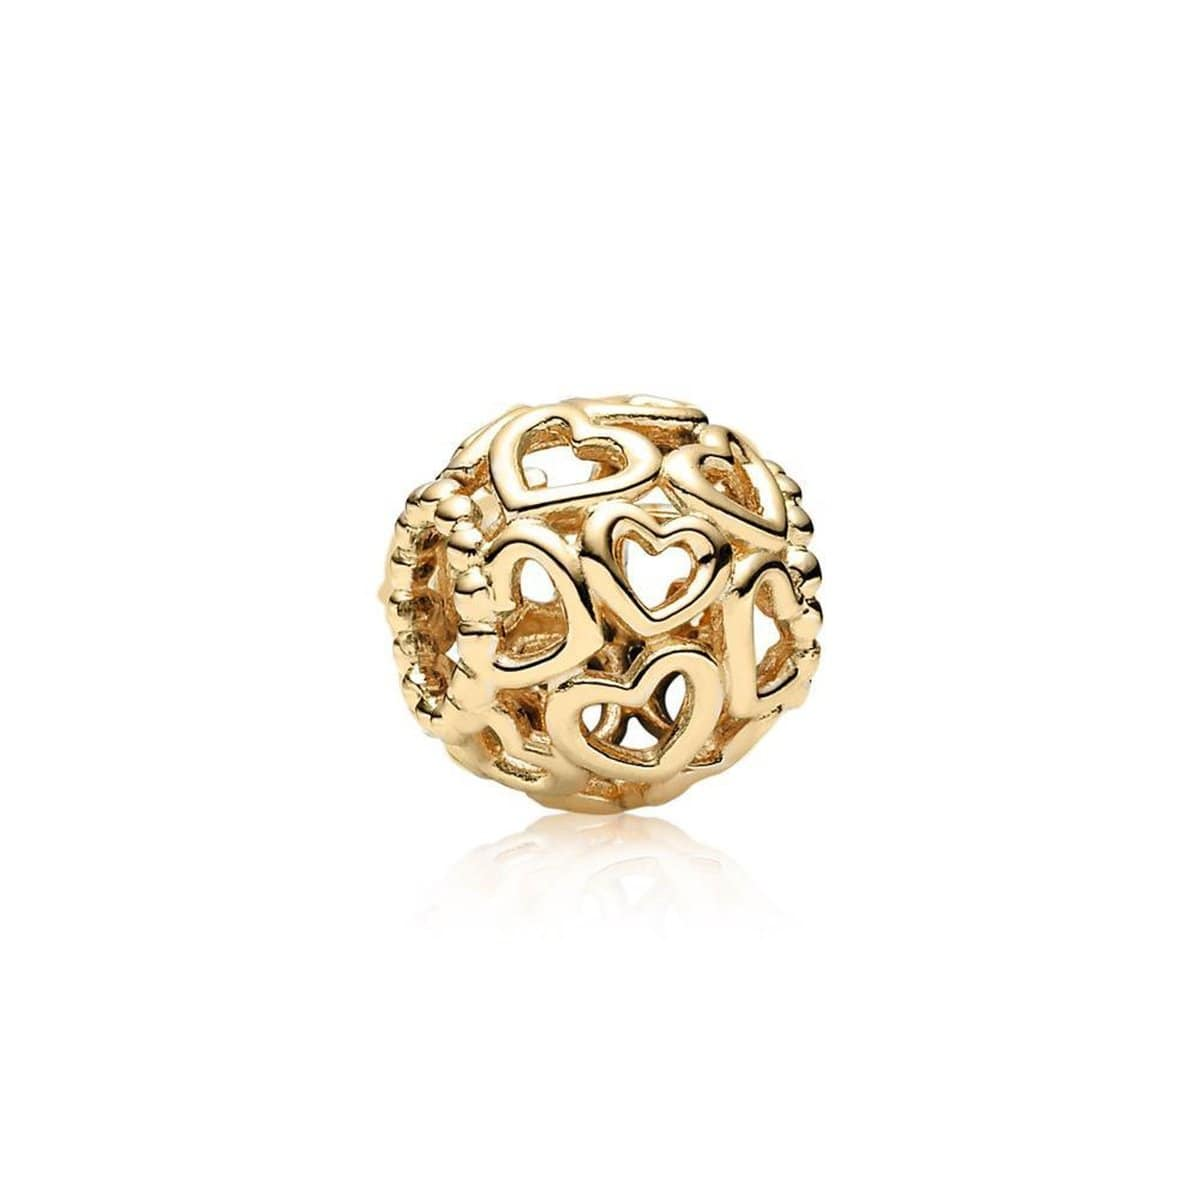 Open Your Heart 14K Gold Charm - 750964-Pandora-Renee Taylor Gallery